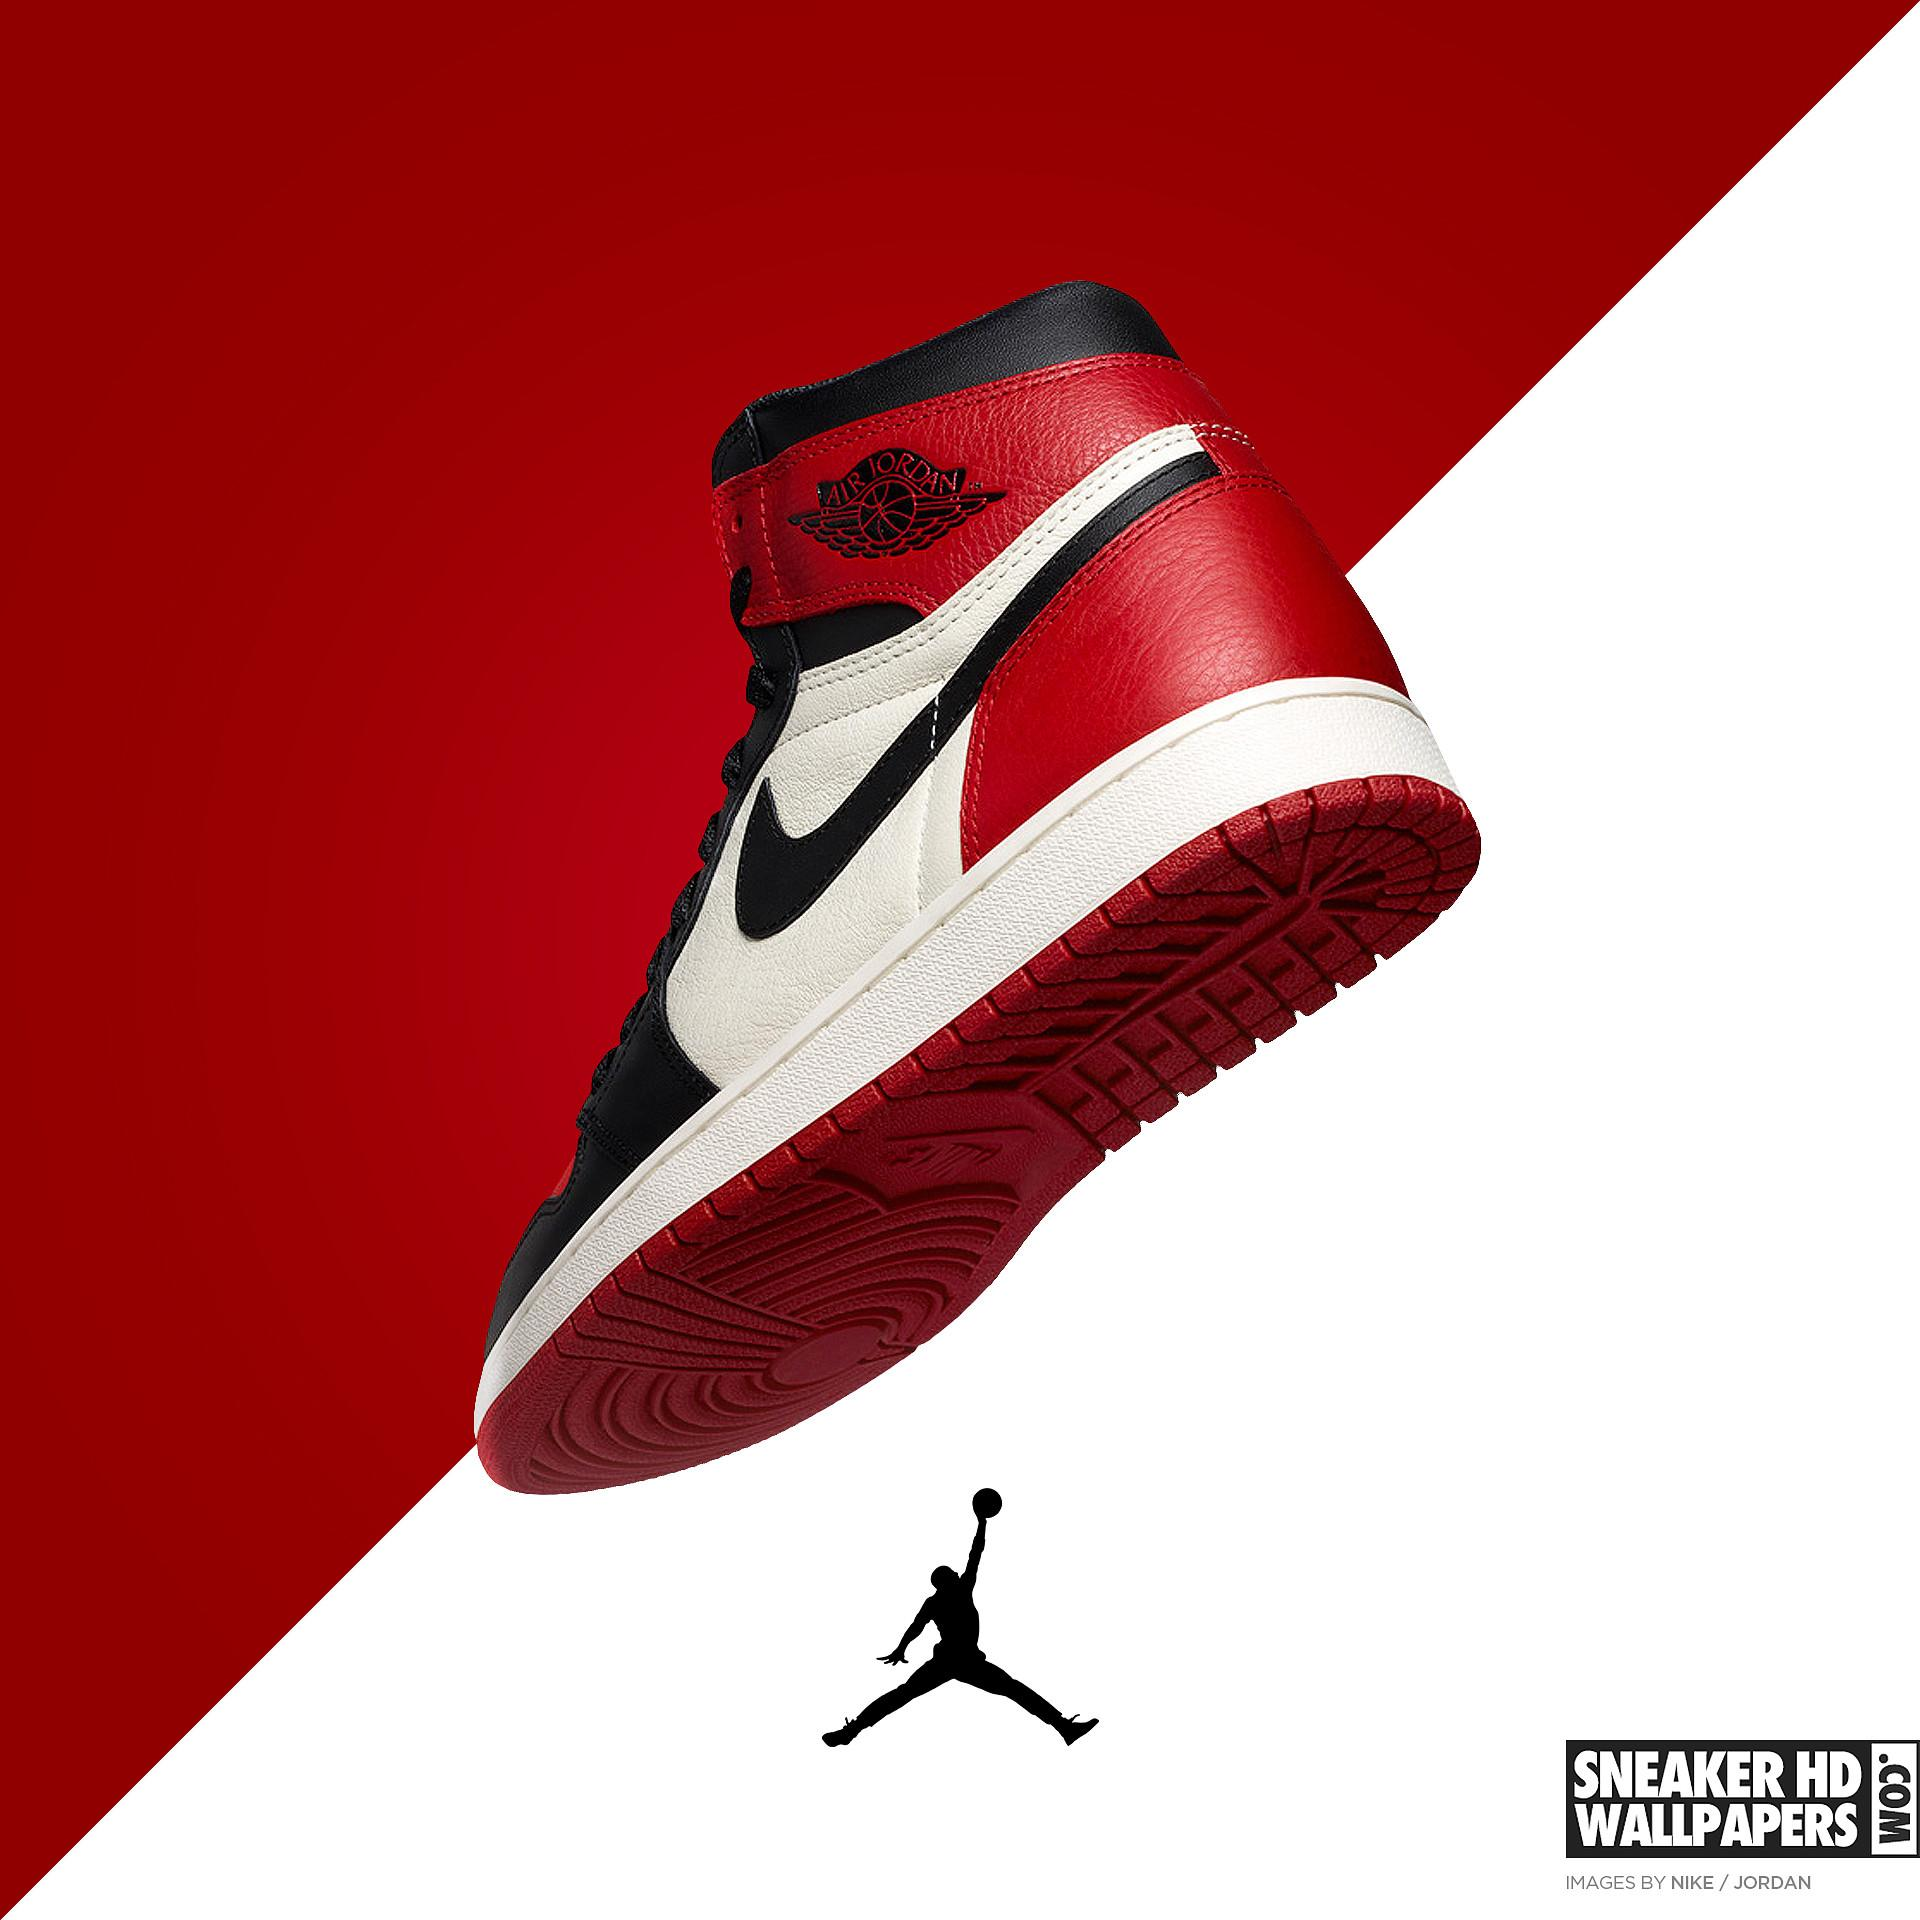 Nike Air Jordan 1 Wallpapers Wallpaper Cave